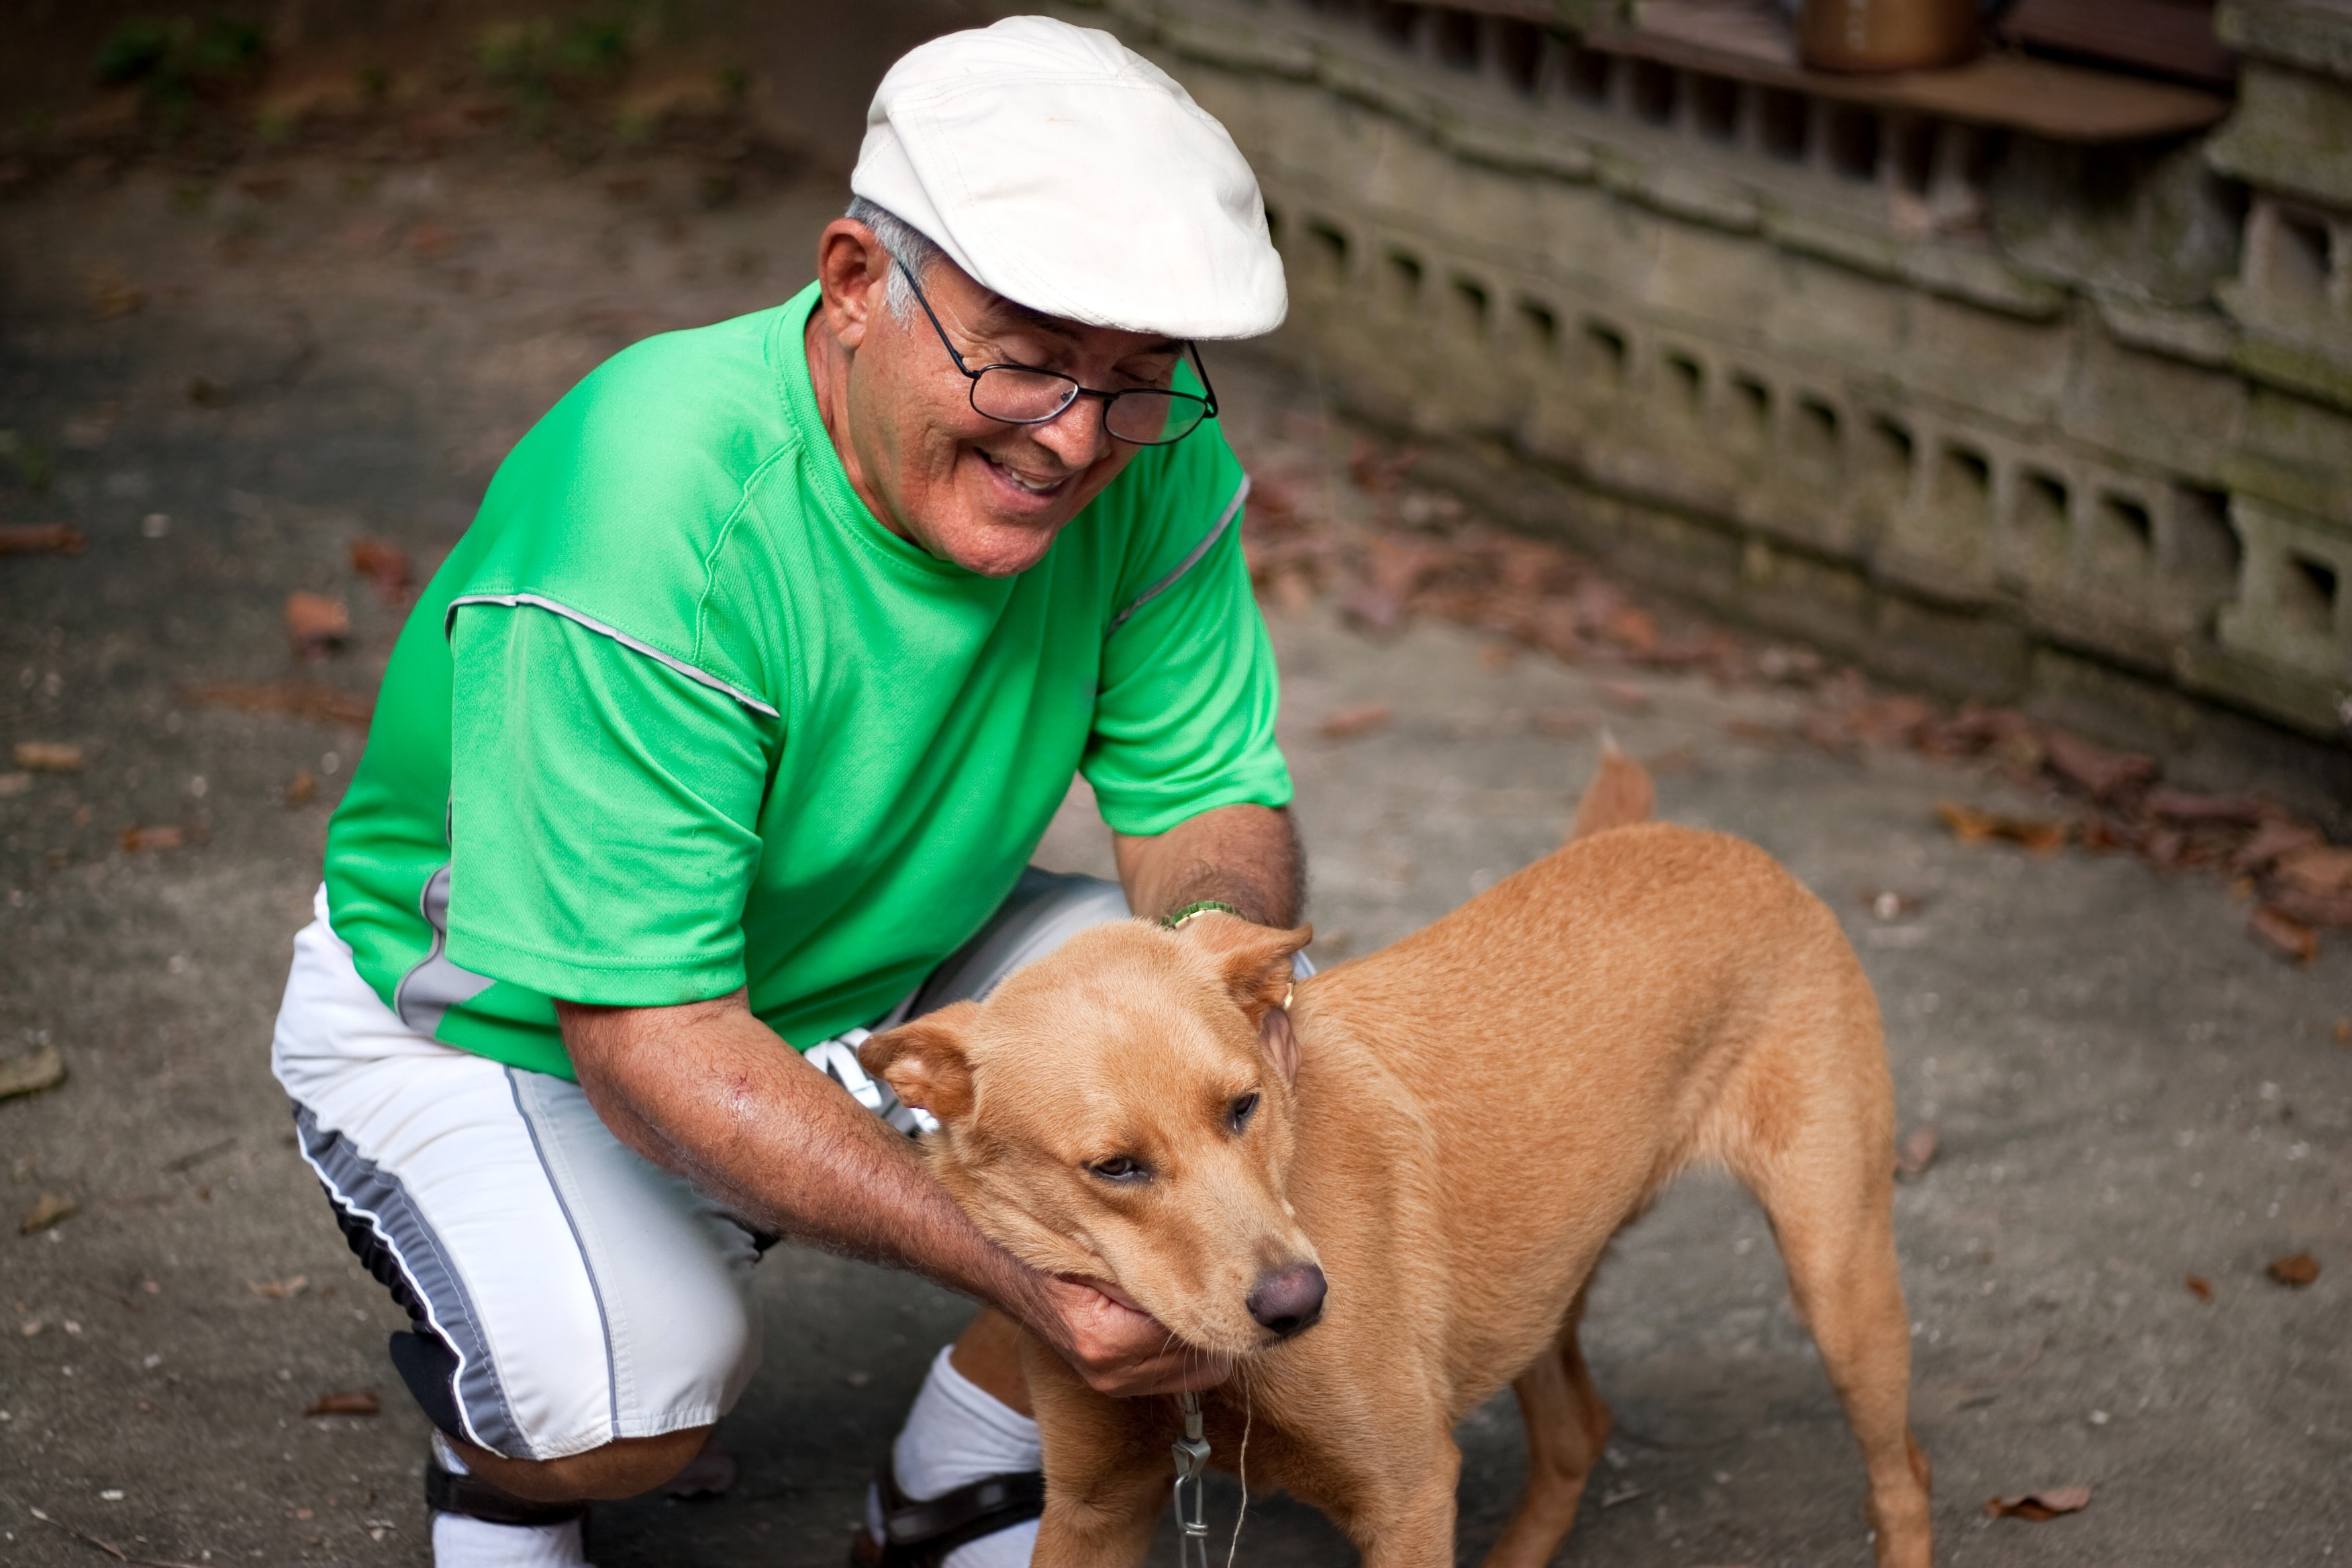 an-elderly-hispanic-senior-citizen-man-petting-his-dog-with-a-large-smile-on-his-face_HFceHaNRHs.jpg